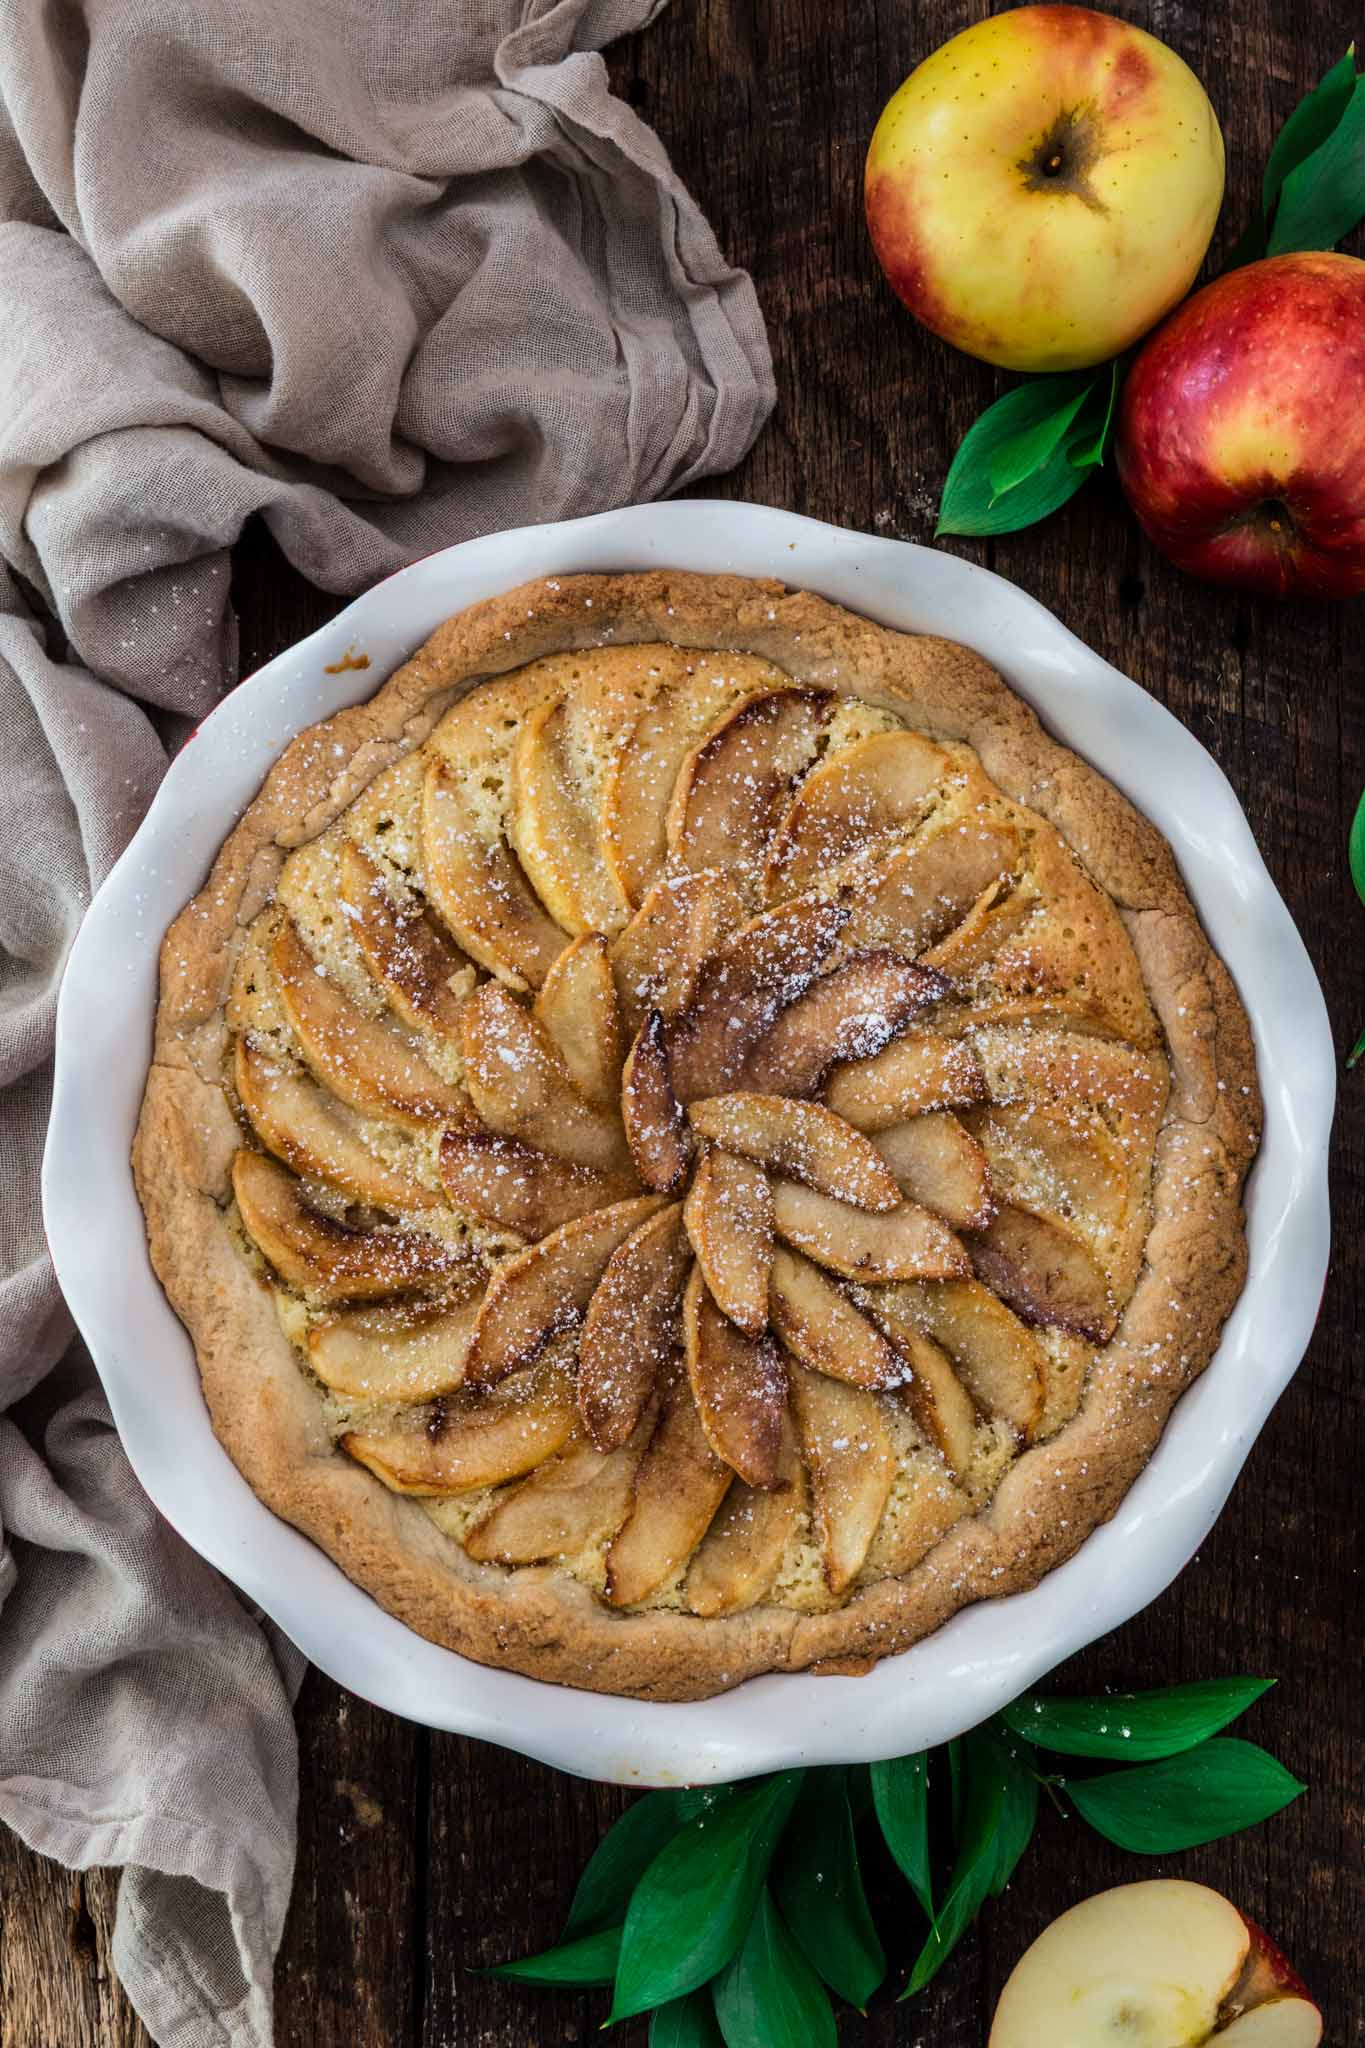 Almond Apple Pie | www.oliviascuisine.com | Inspired by the French Tarte Bourdaloue, this apple version consists of traditional almond cream topped with browned/caramelized apple slices. If you're tired of the old classic apple pie, give this a try. You won't regret it! (Recipe and food photography by @oliviascuisine.)